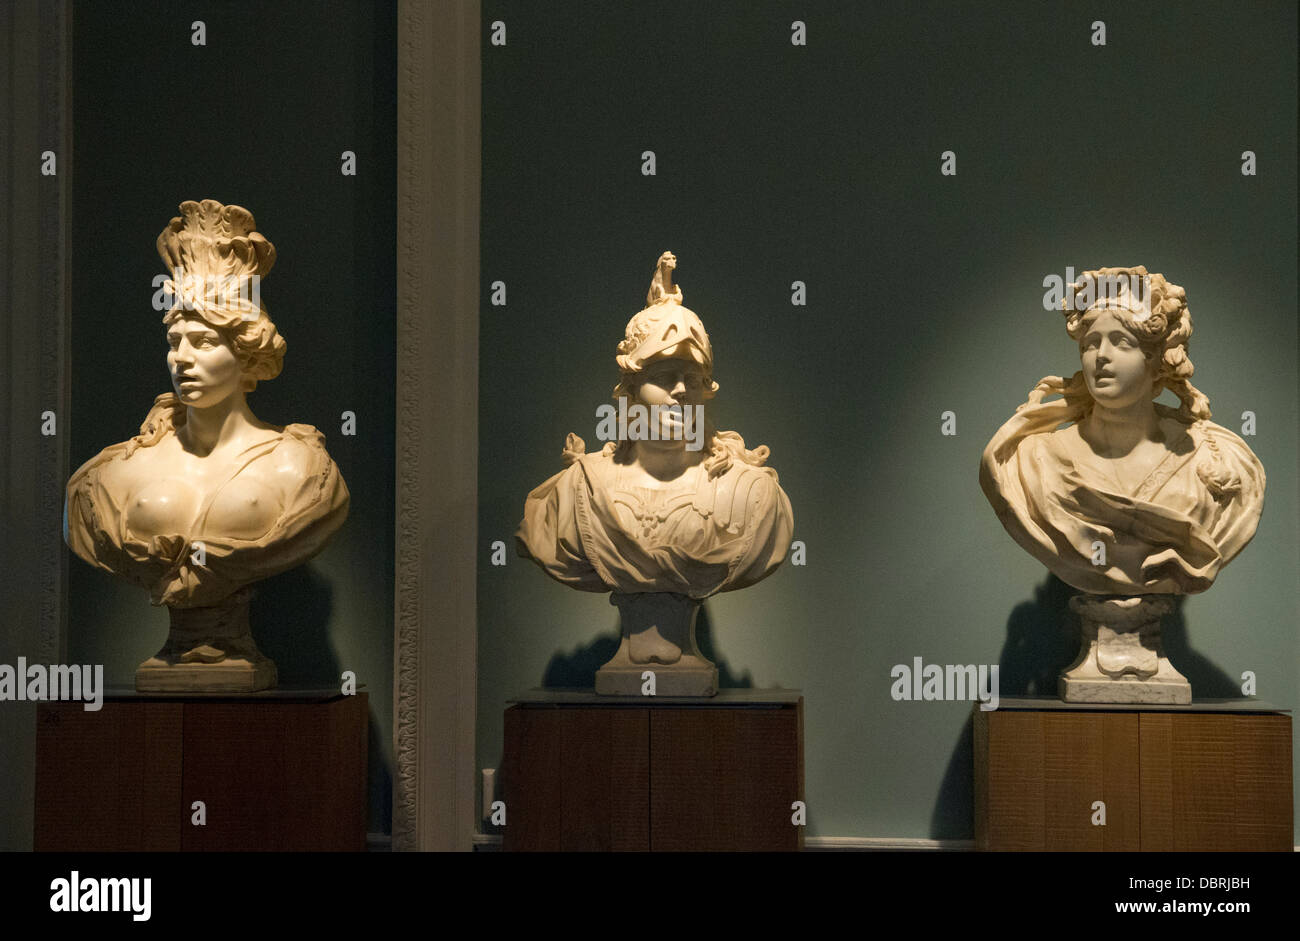 Marble busts in Compton Verney Museum WarwickshireEngland - Stock Image